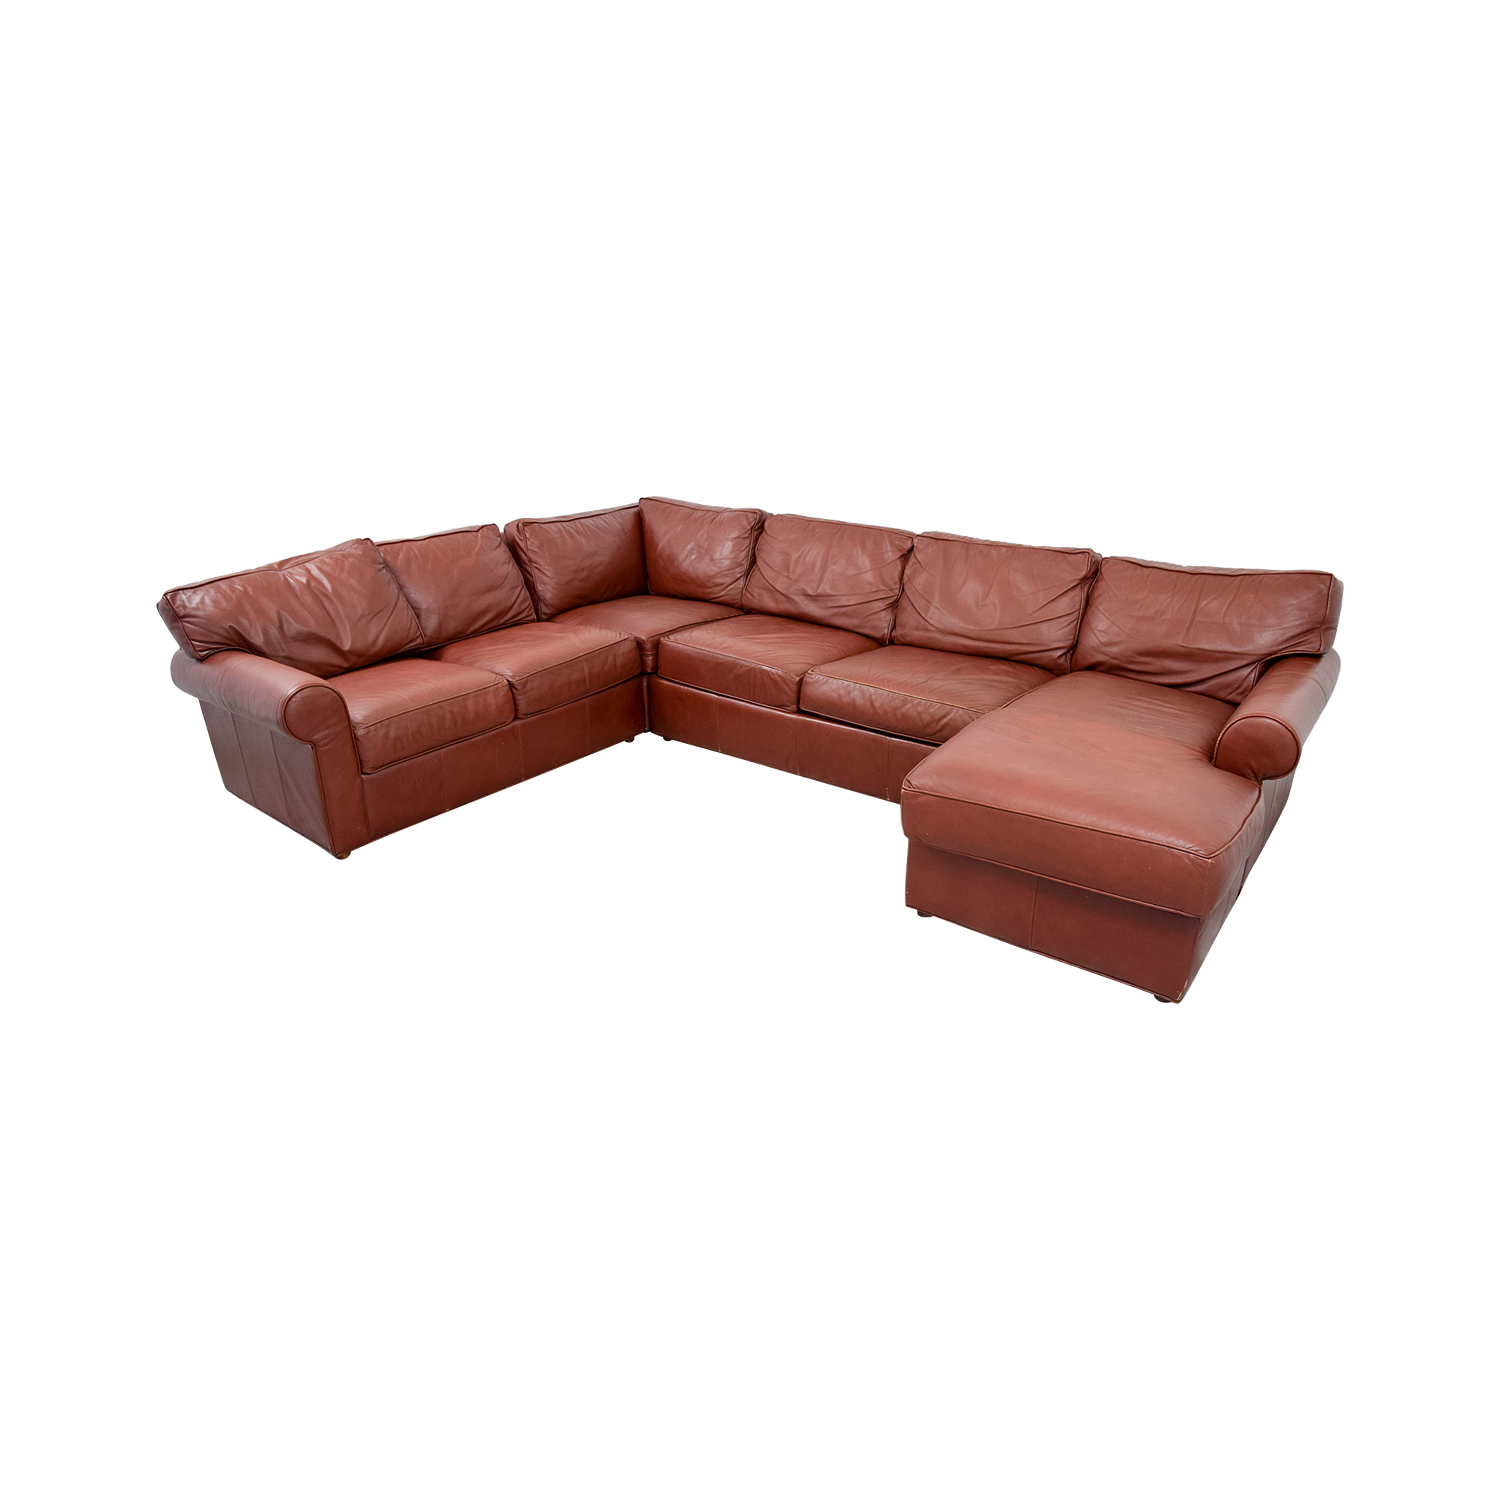 Ethan Allen Burgundy Leather Sectional with Lounger / Sofas